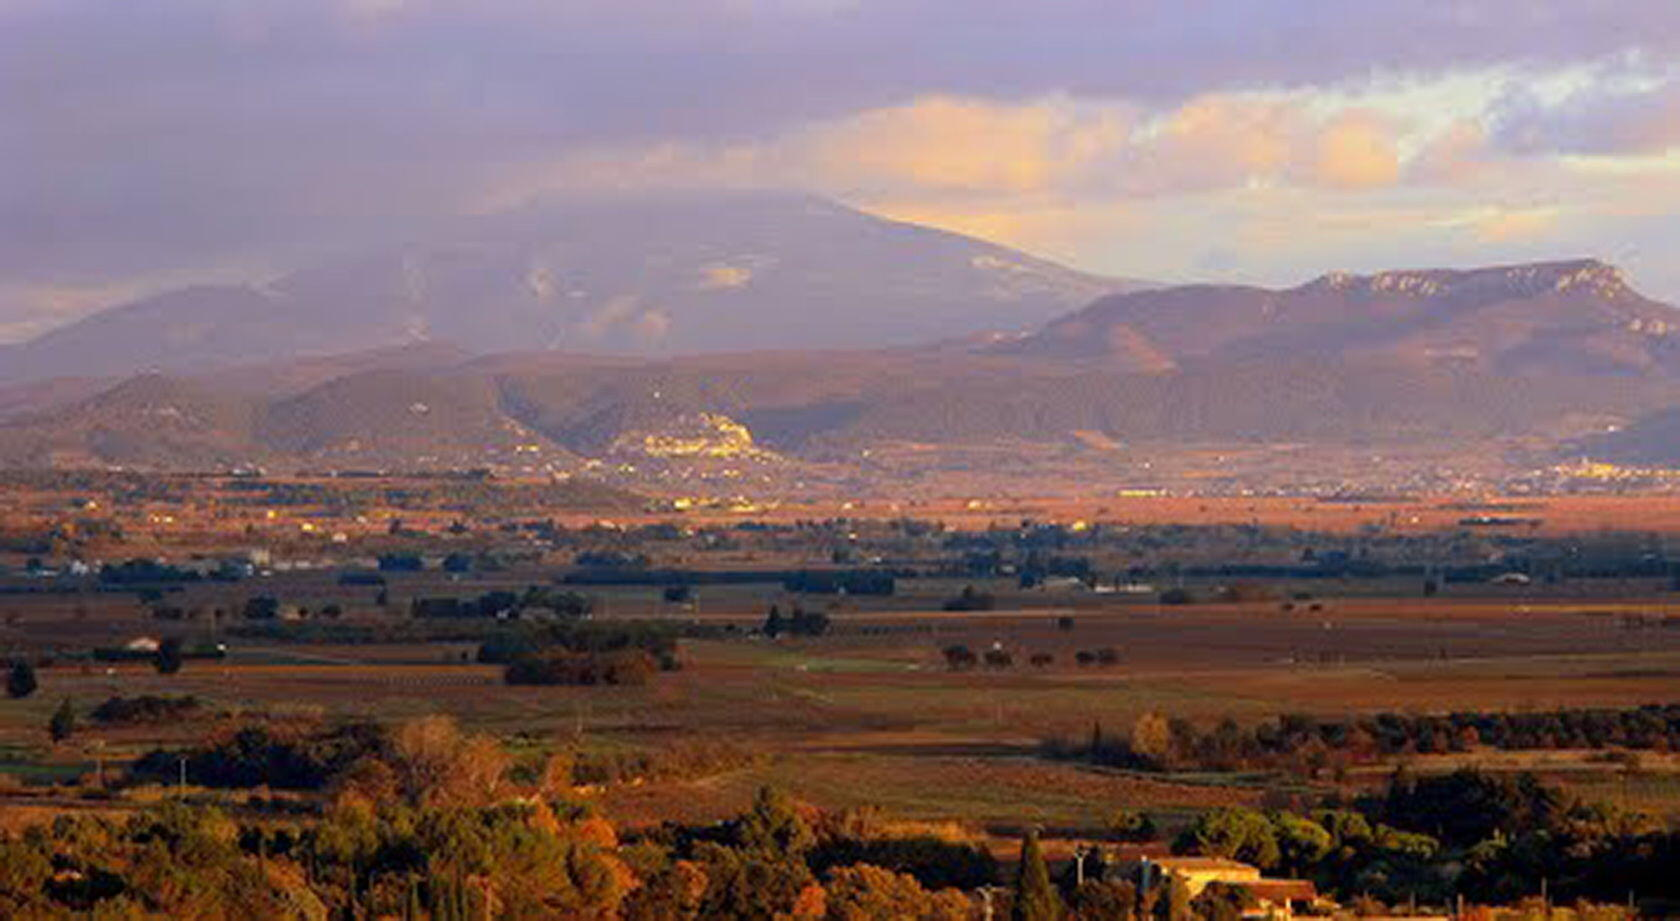 View Sainte-Cécile-les-Vignes towards Ventoux